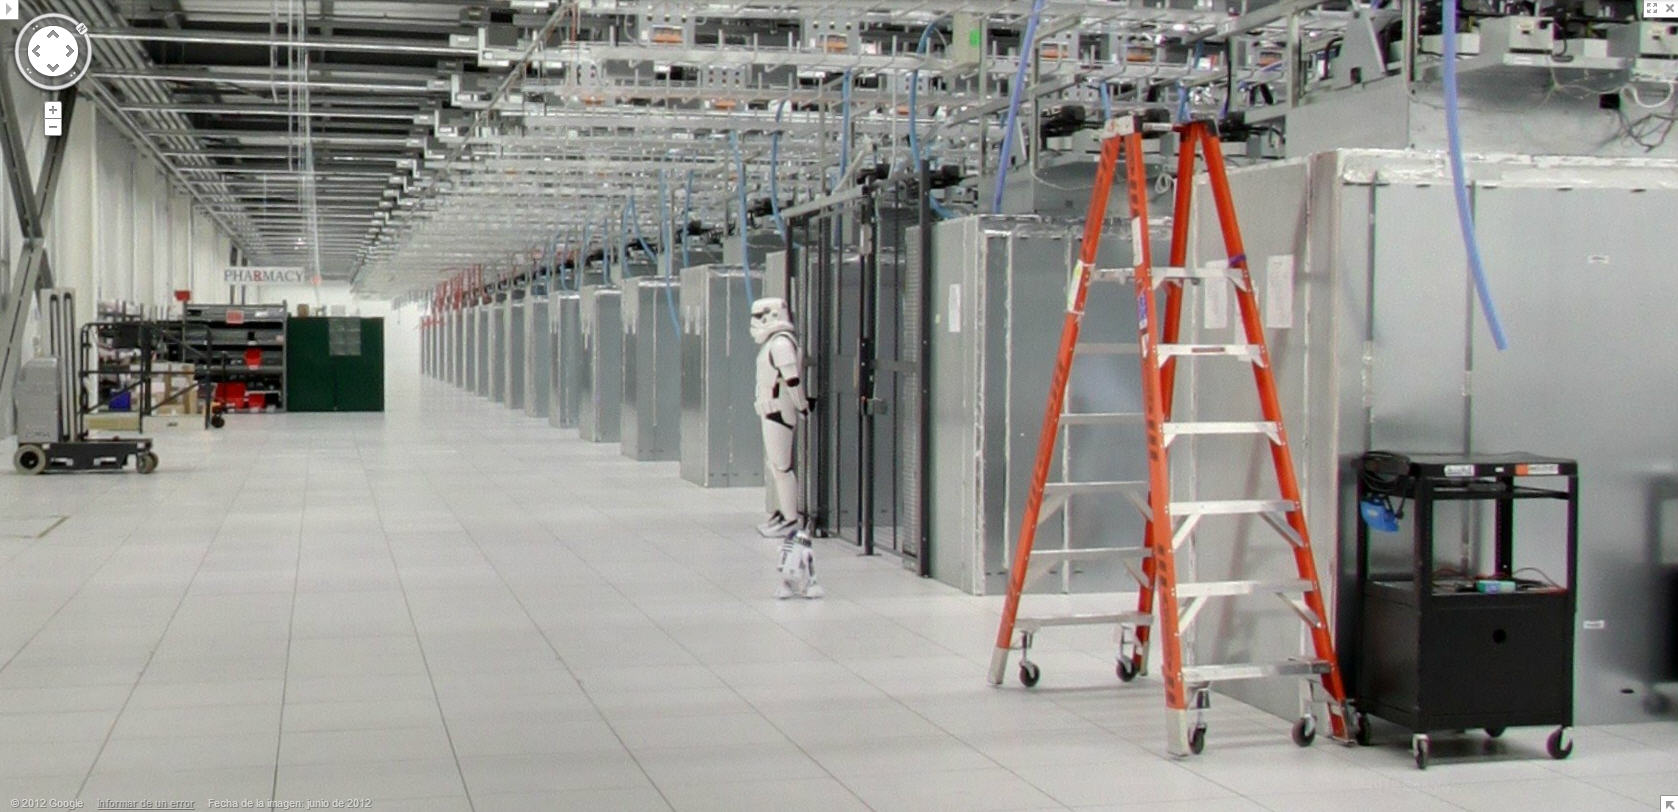 google-street-view-captures-a-storm-trooper-protecting-the-google-data-center